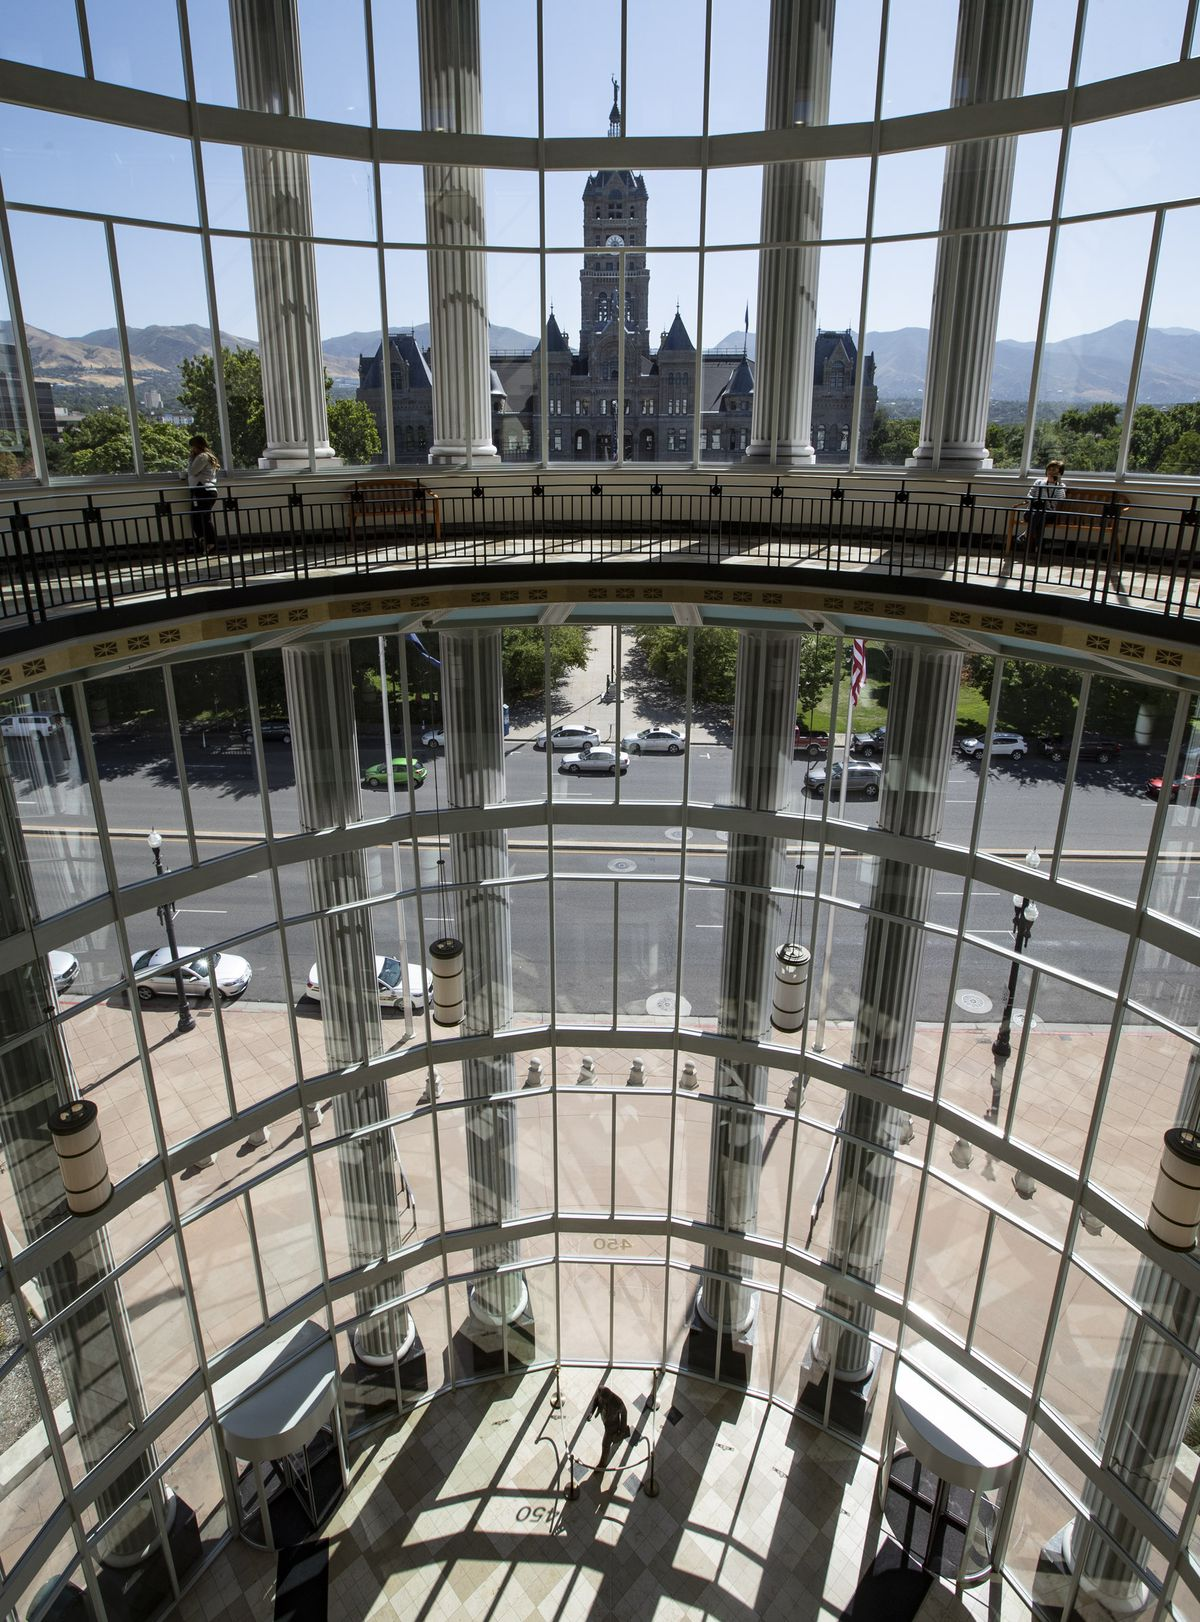 The Salt Lake City and County Building photographed from inside the Matheson Courthouse on Monday, Aug. 12, 2019.